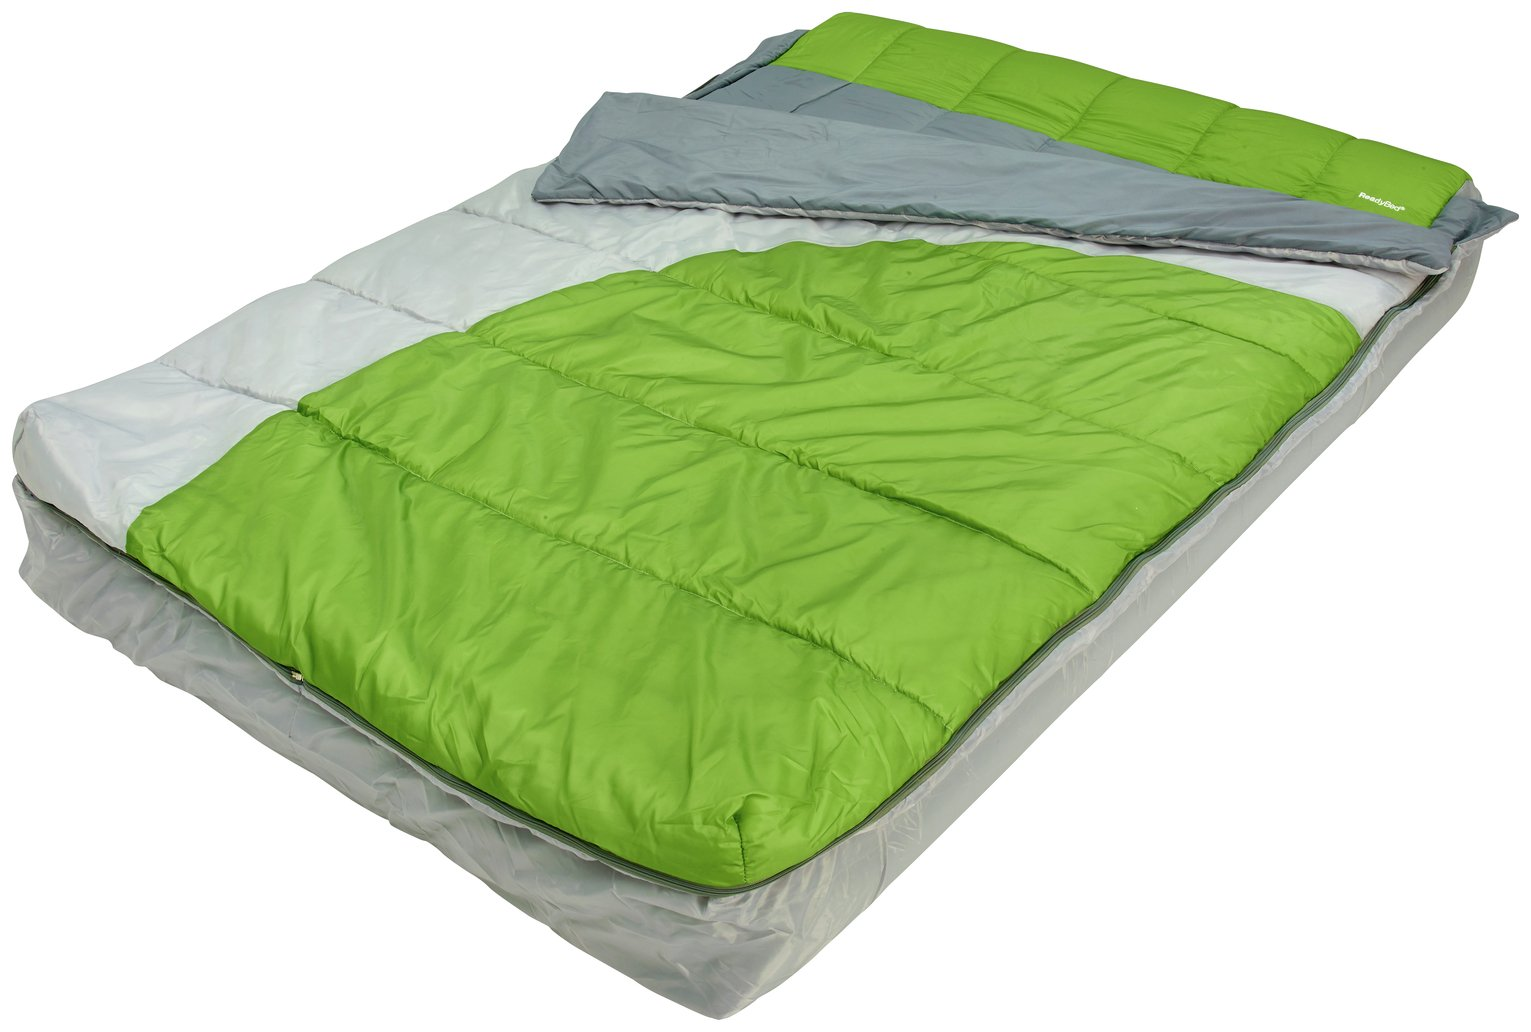 ReadyBed Double Inflatable Camping Air Bed and Sleeping Bag